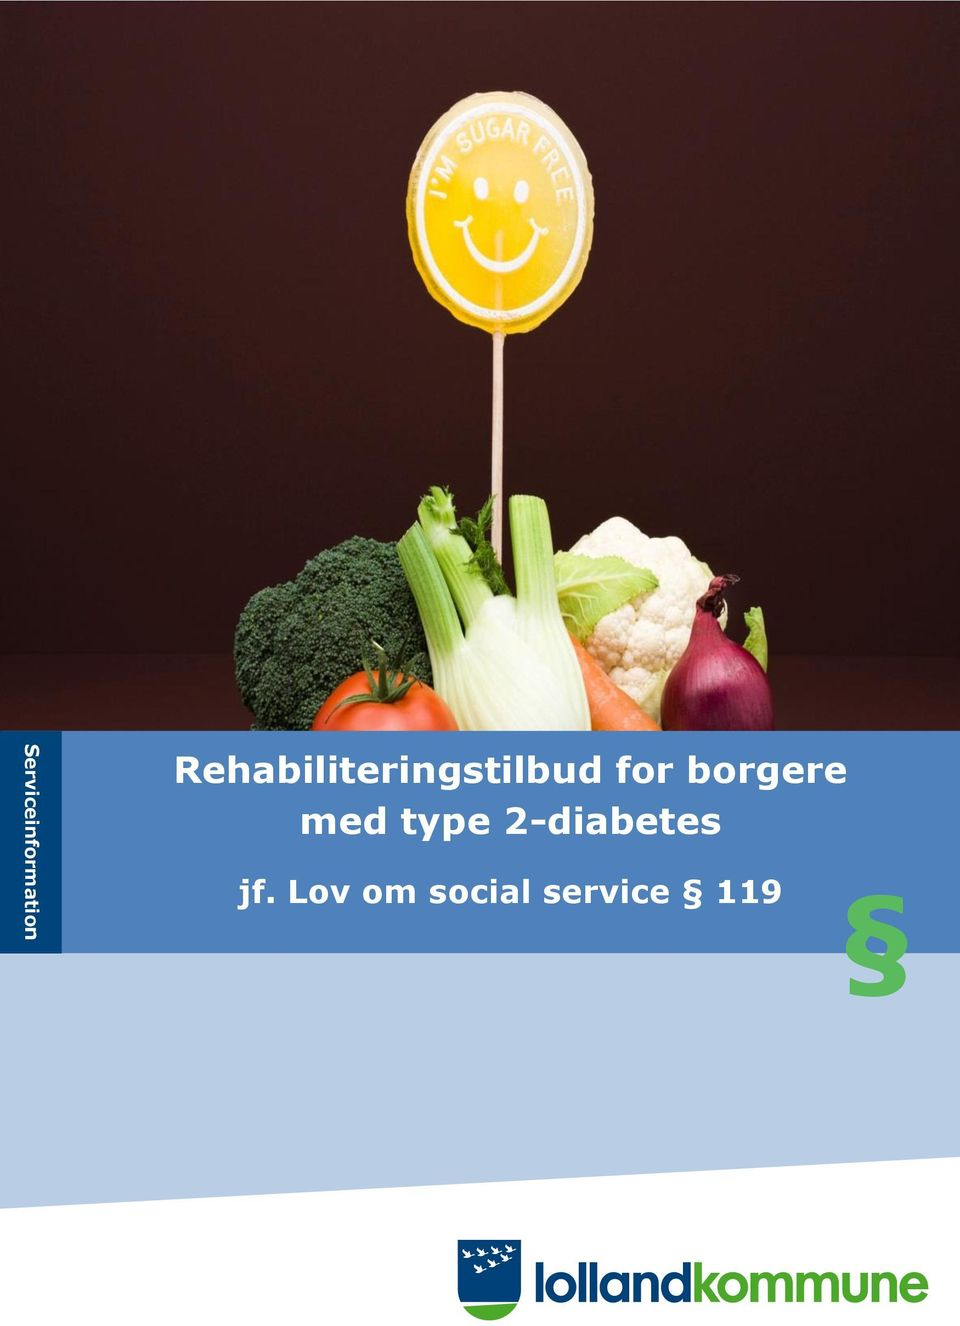 borgere med type